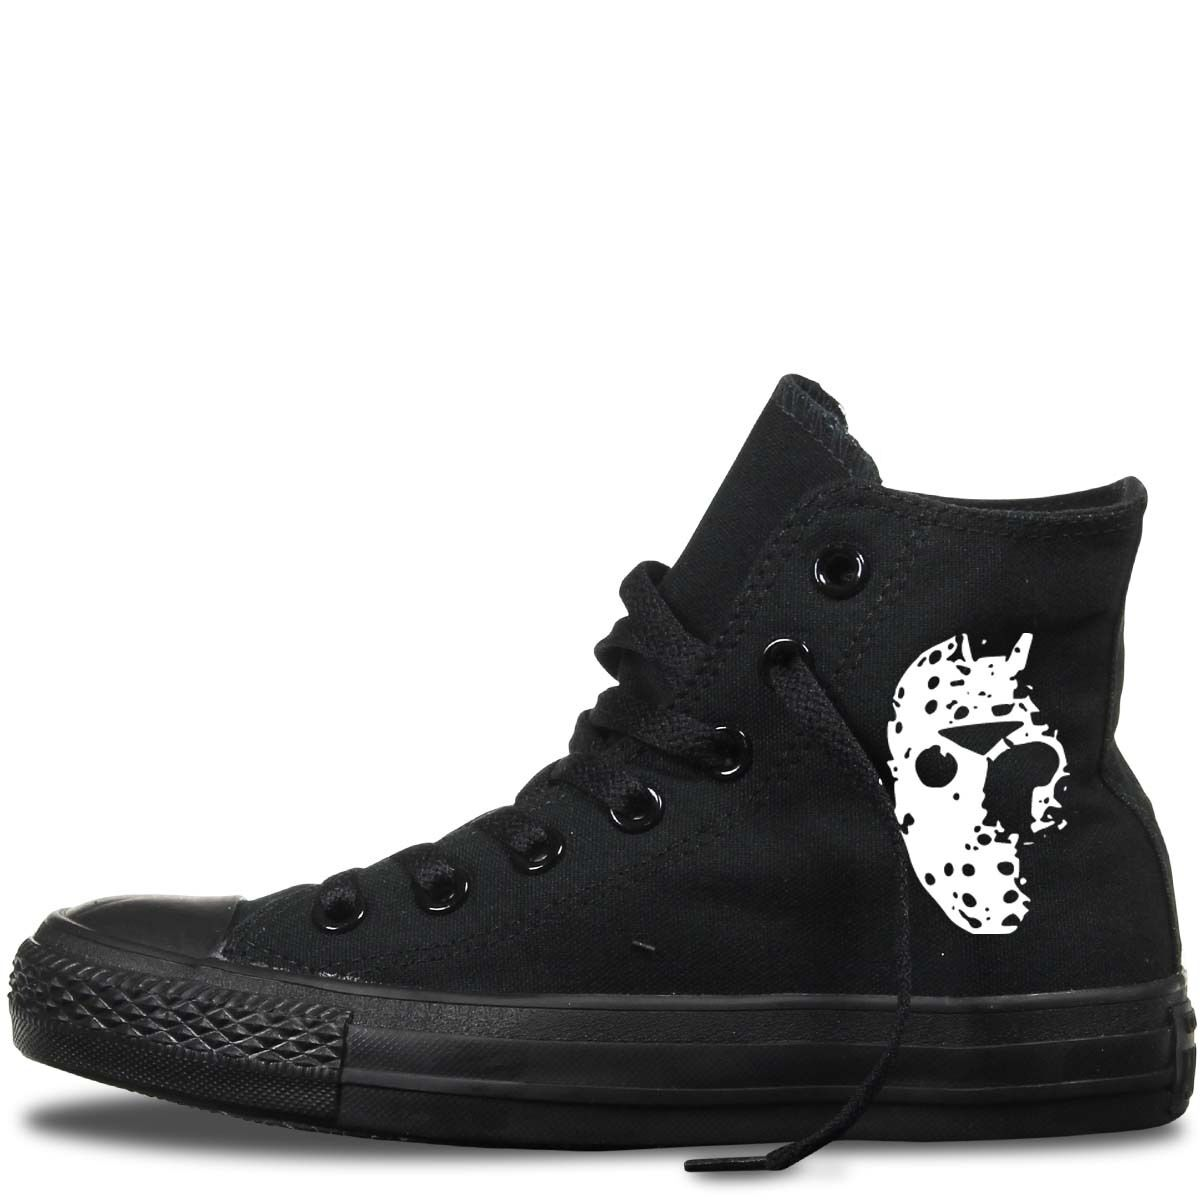 Jason voorhees custom converse all star mens damen horror friday 13th     |  | Online Kaufen